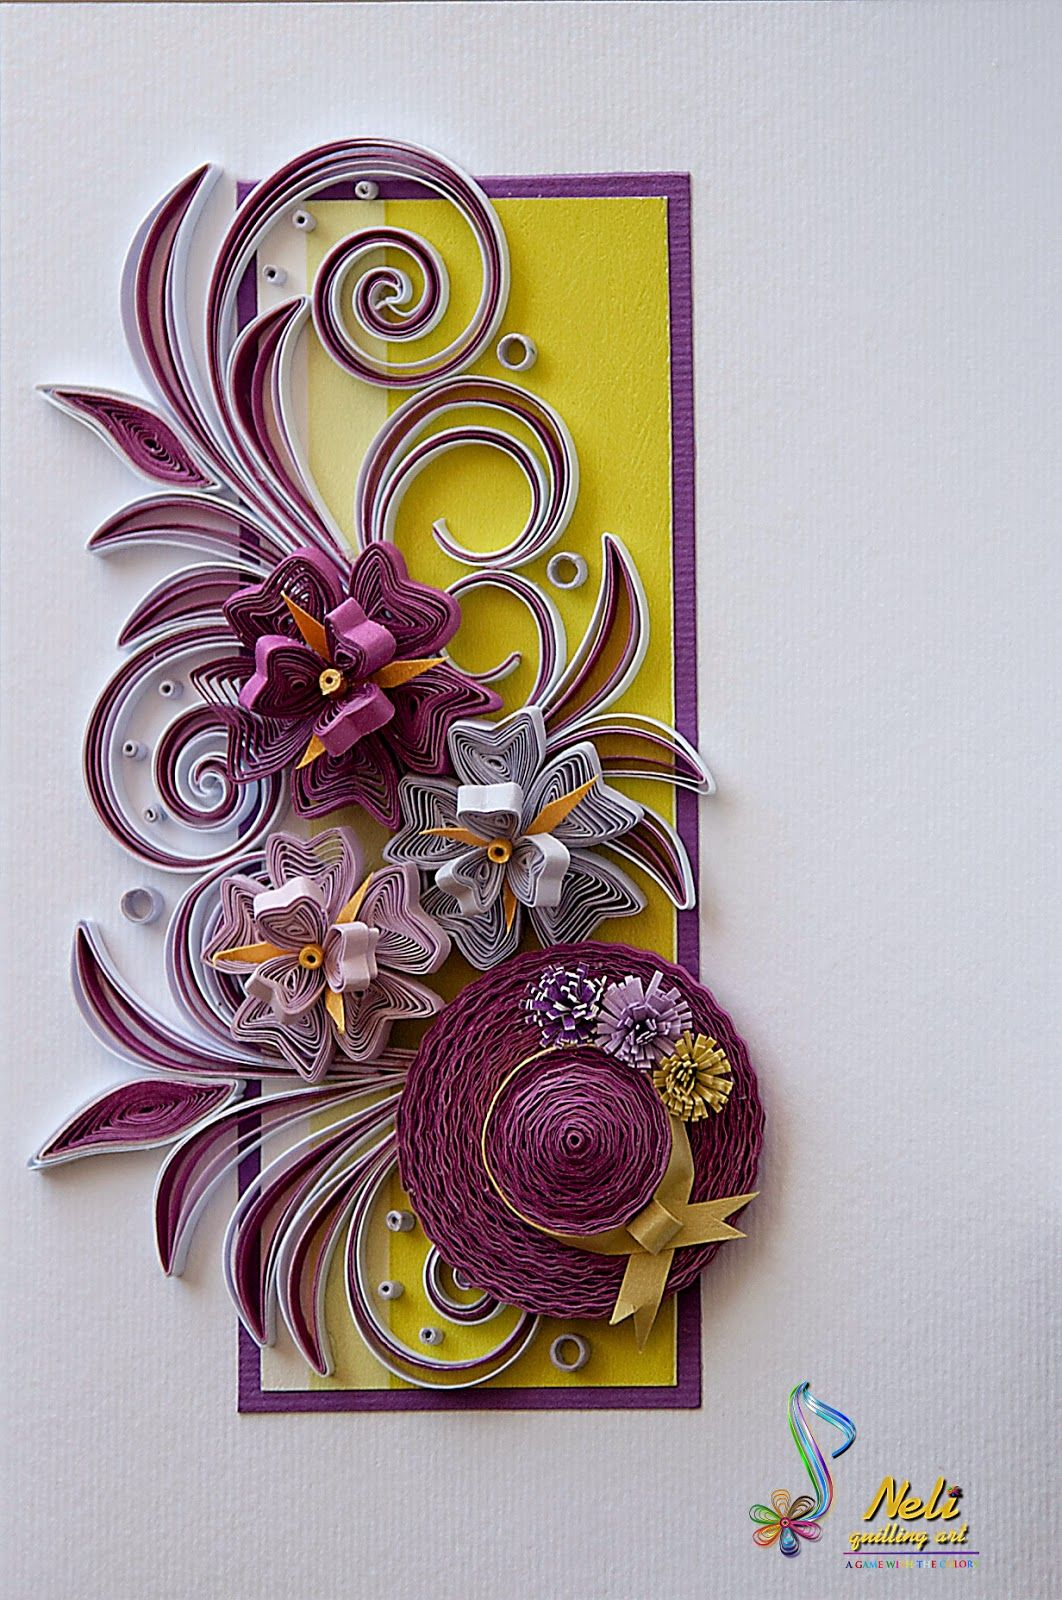 Neli quilling cards flowers 2014 9 quilling flowers for Paper quilling paper